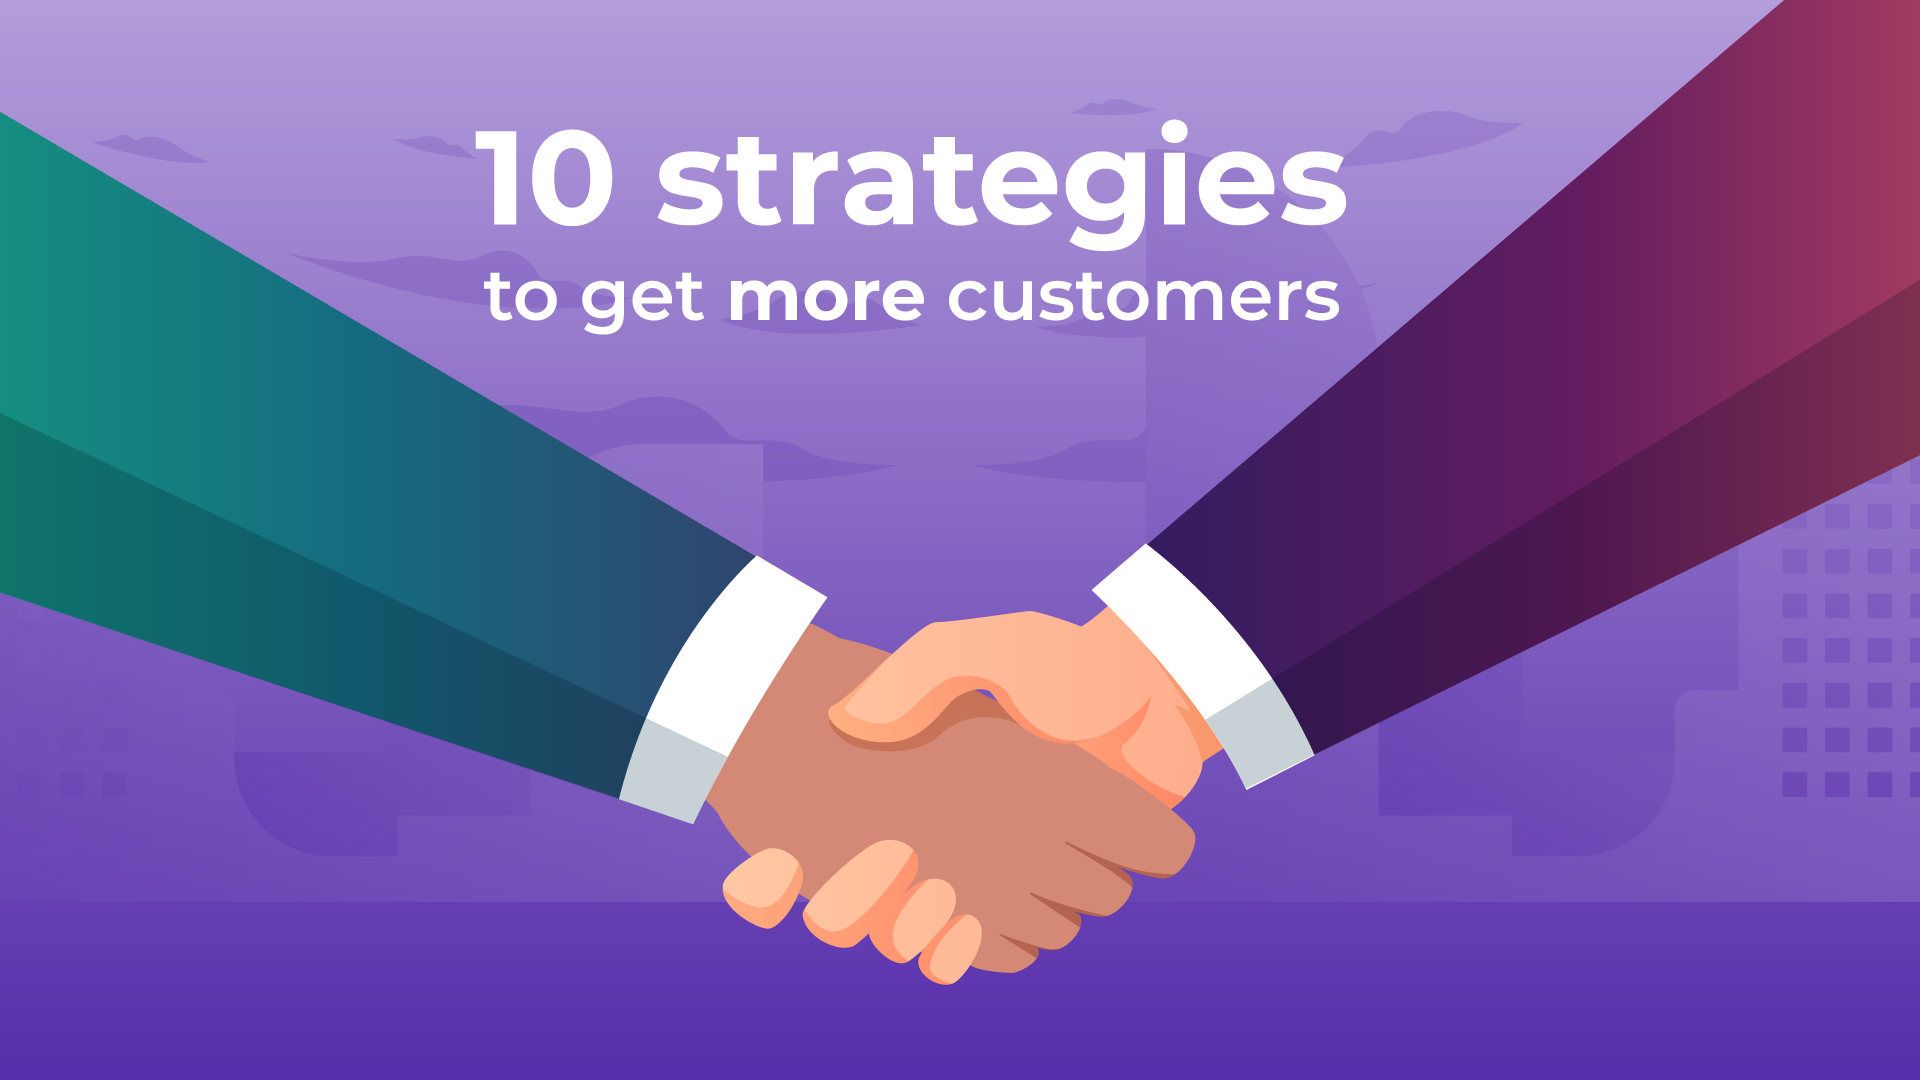 10 Strategies to Get More Customers